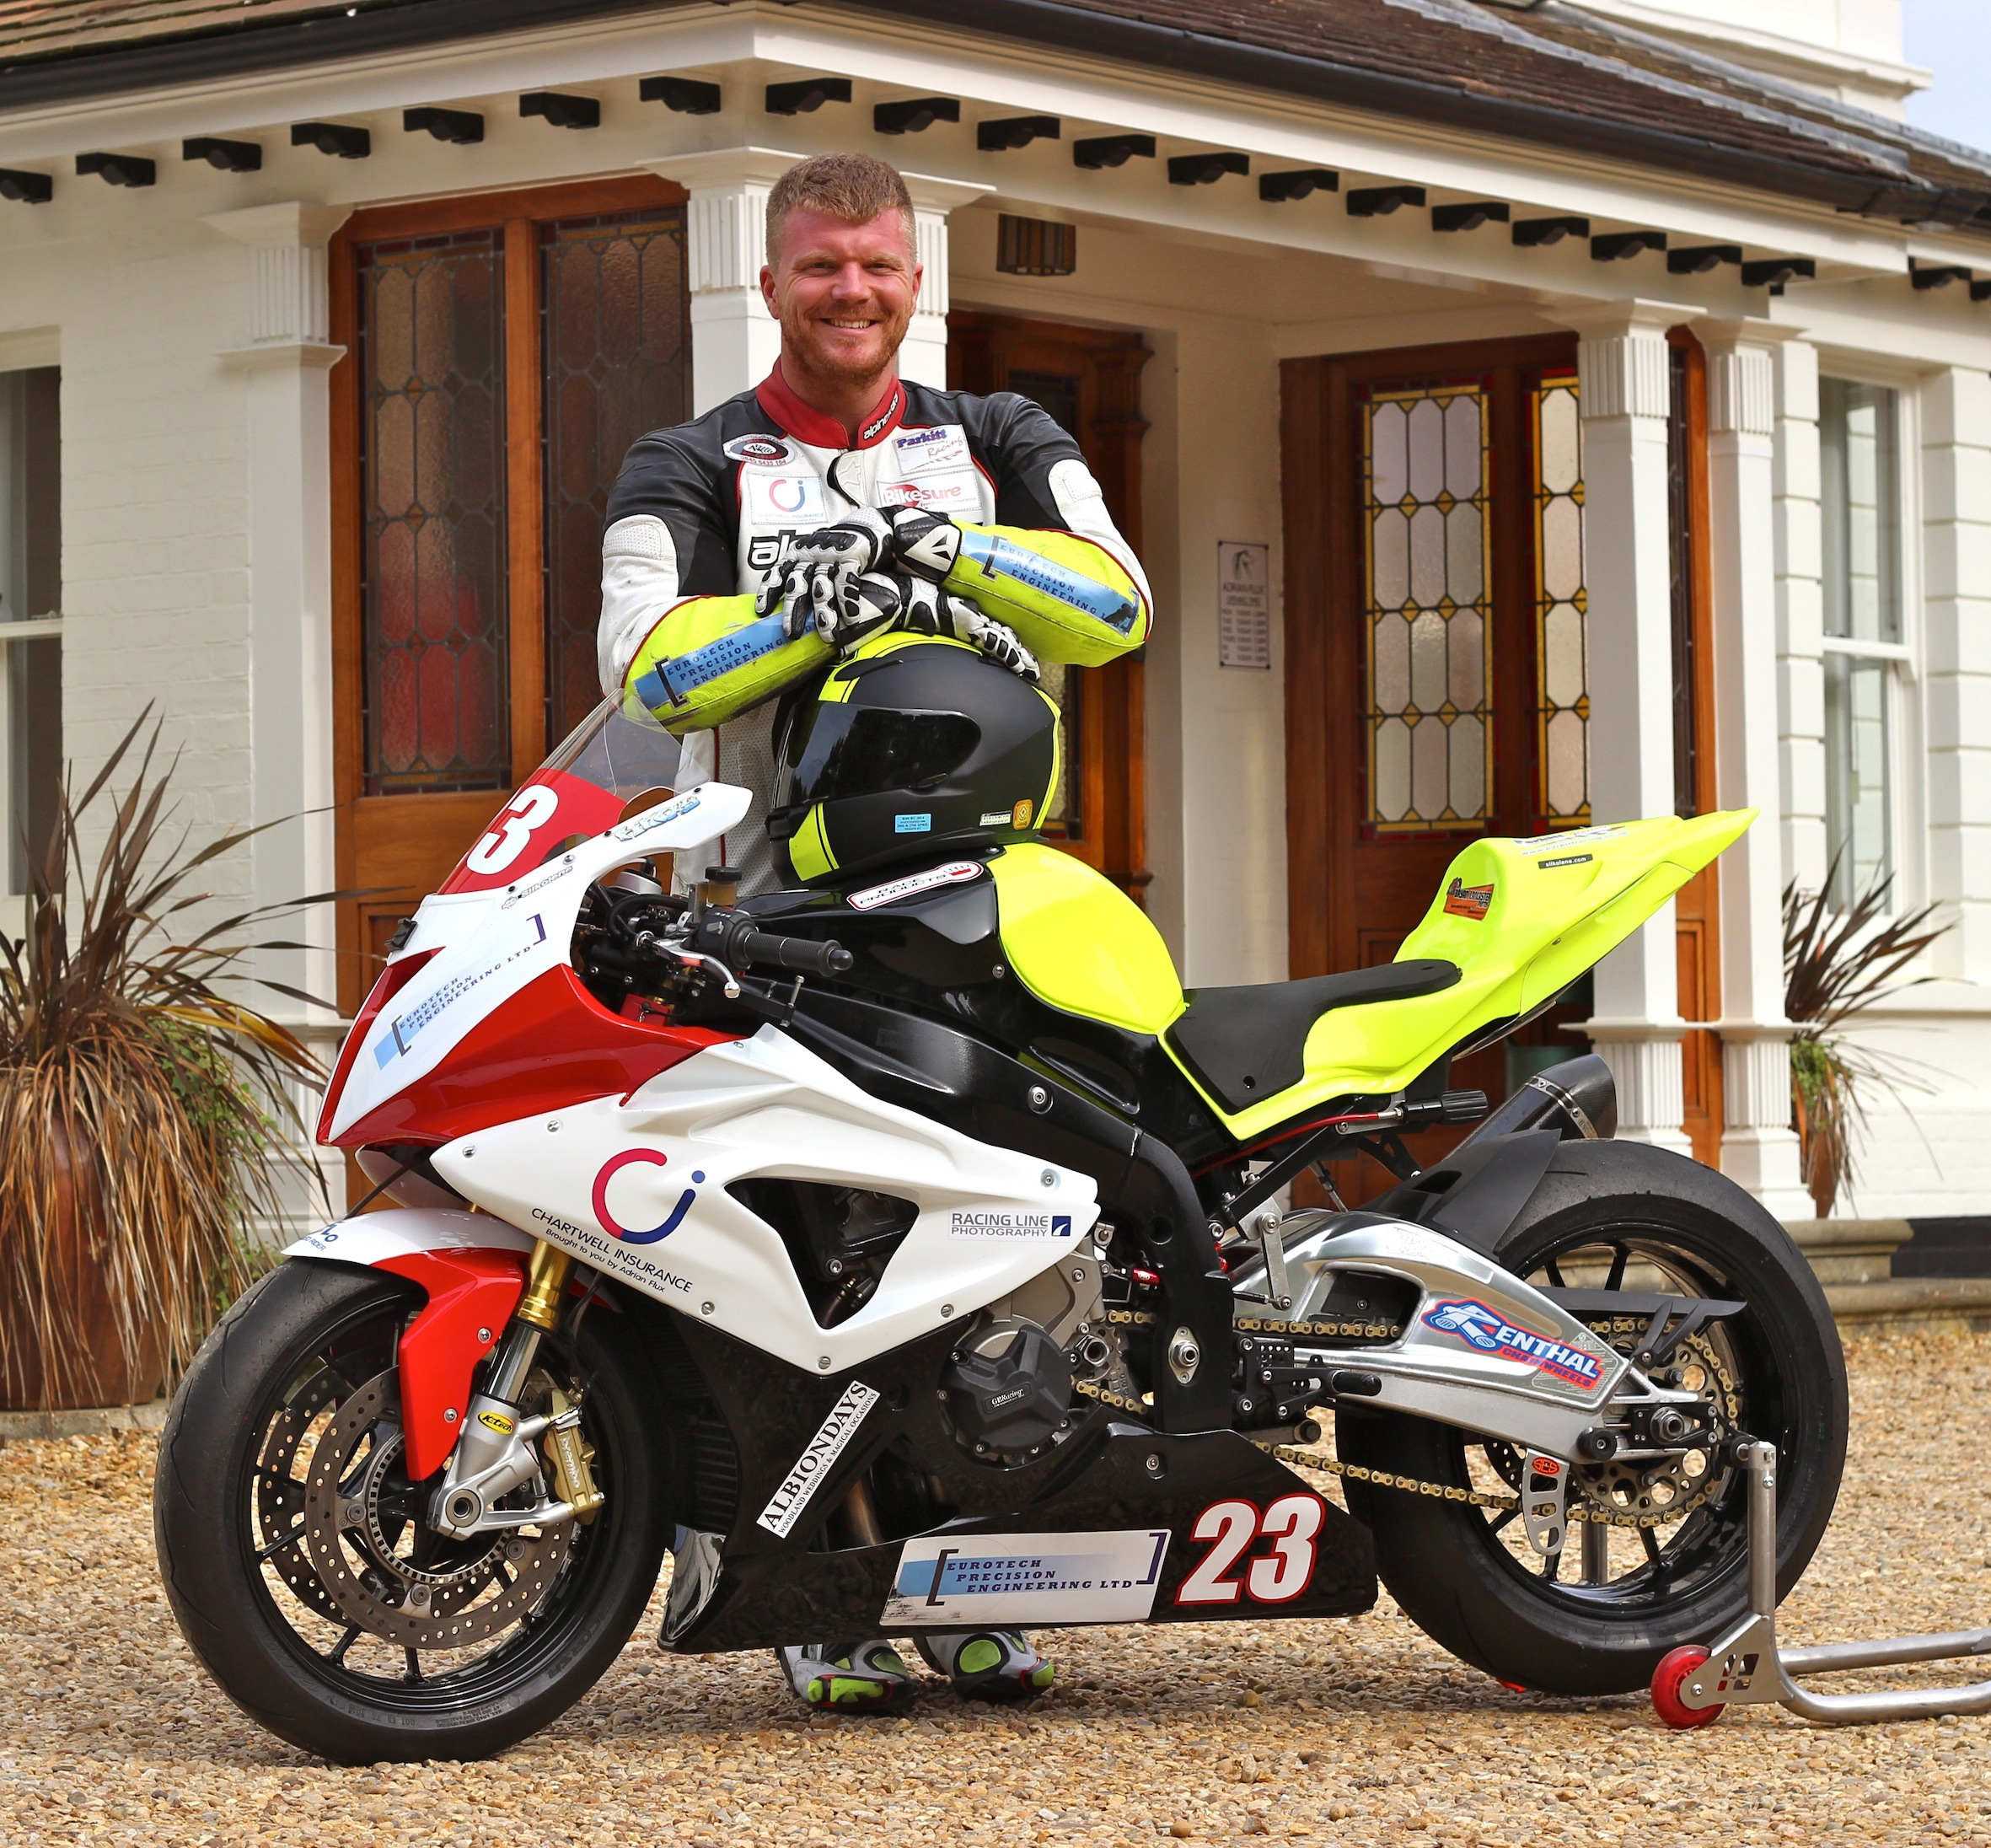 Disabled racer Fincham up and running – on his dad's bike